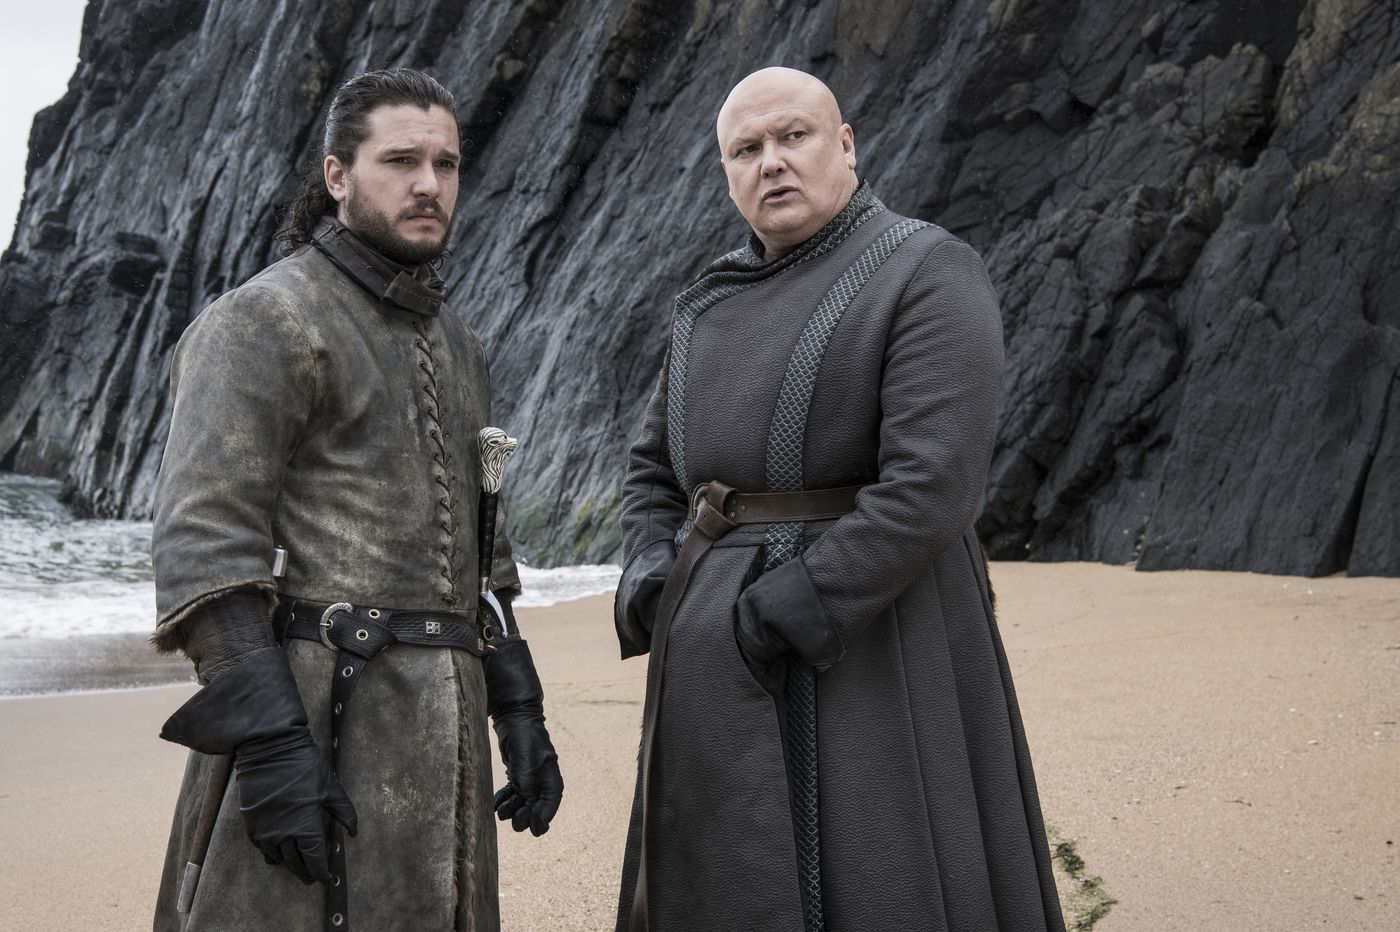 In Northern Ireland, 'Game of Thrones' leaves a lasting legacy